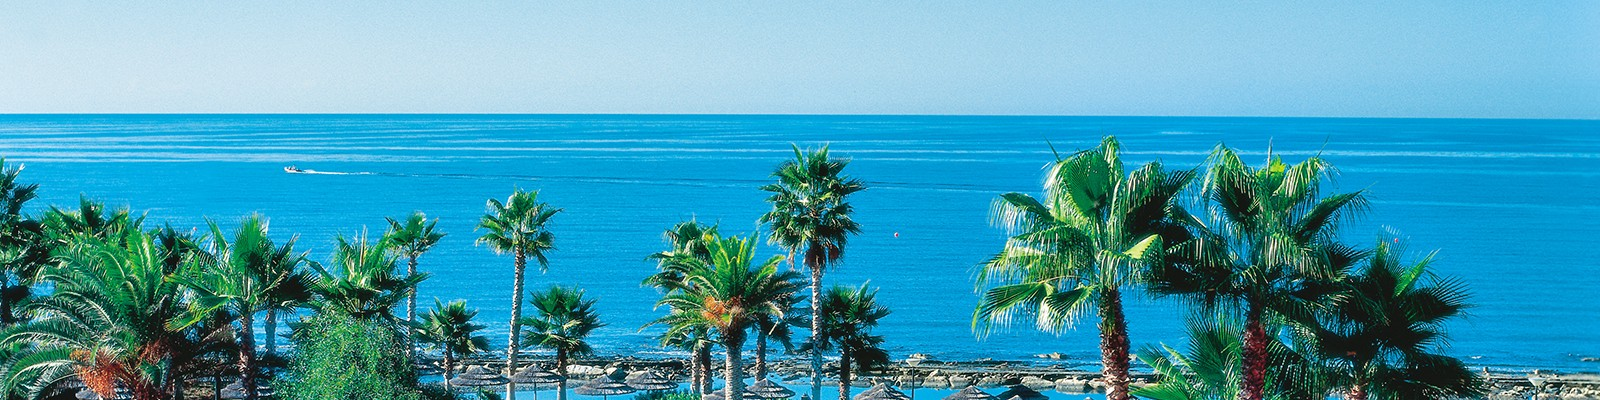 Cyprus Honeymoons - honeymoon Dreams - Luxury accommodation